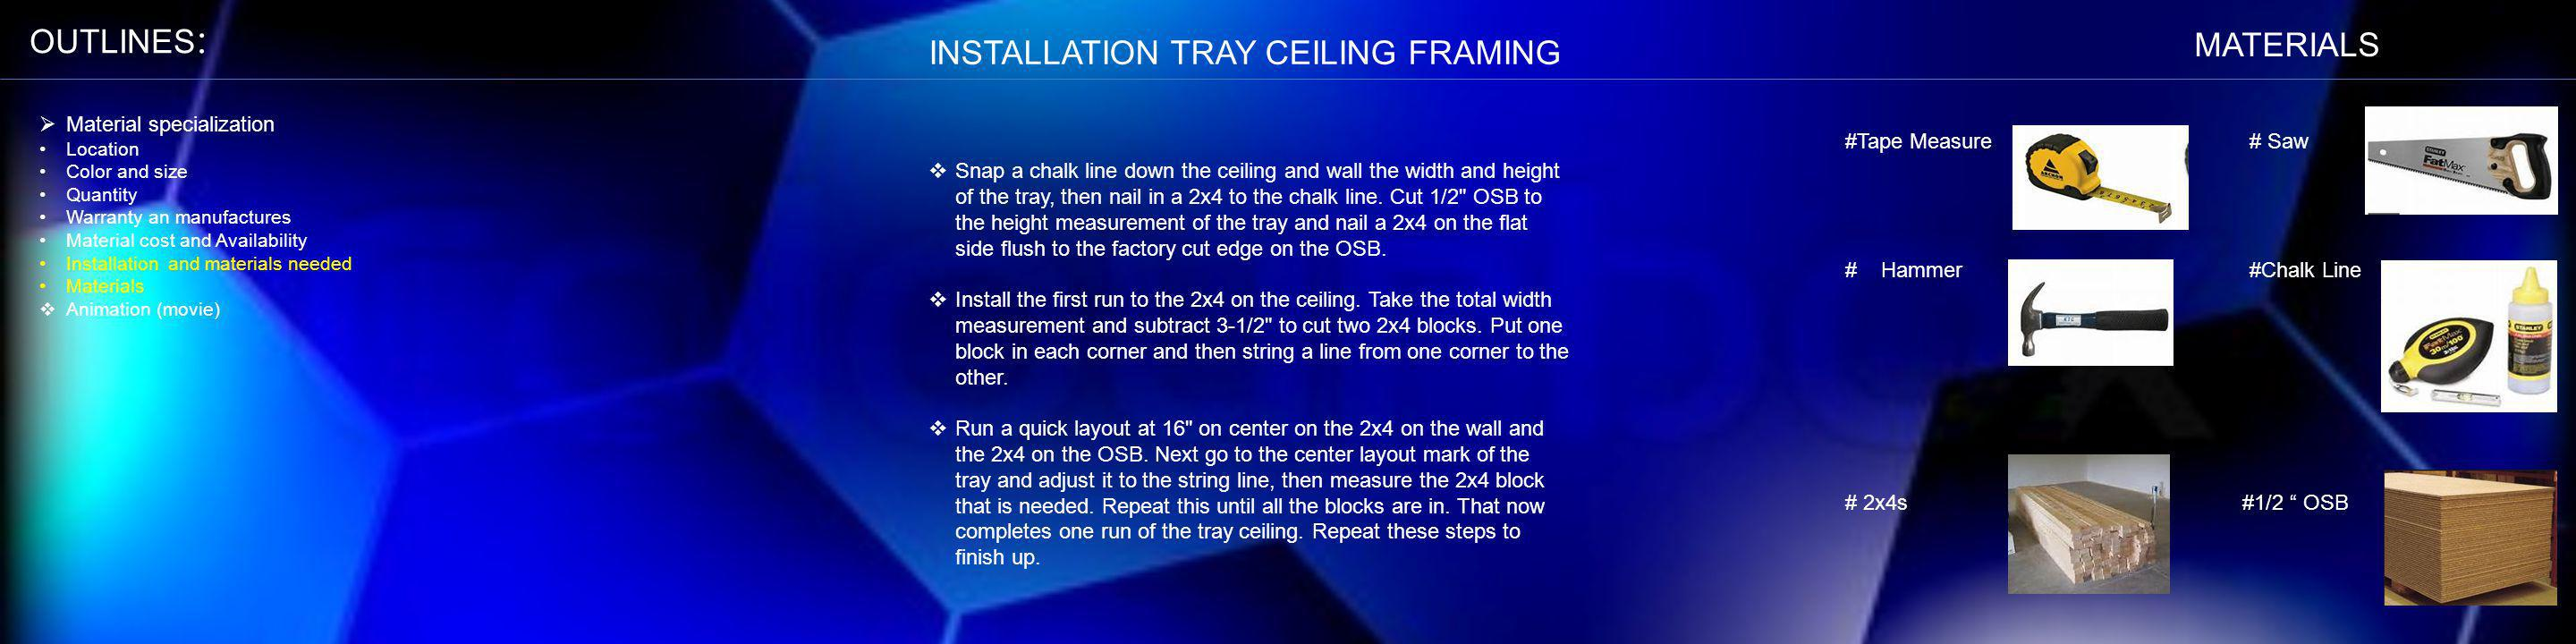 INSTALLATION TRAY CEILING FRAMING